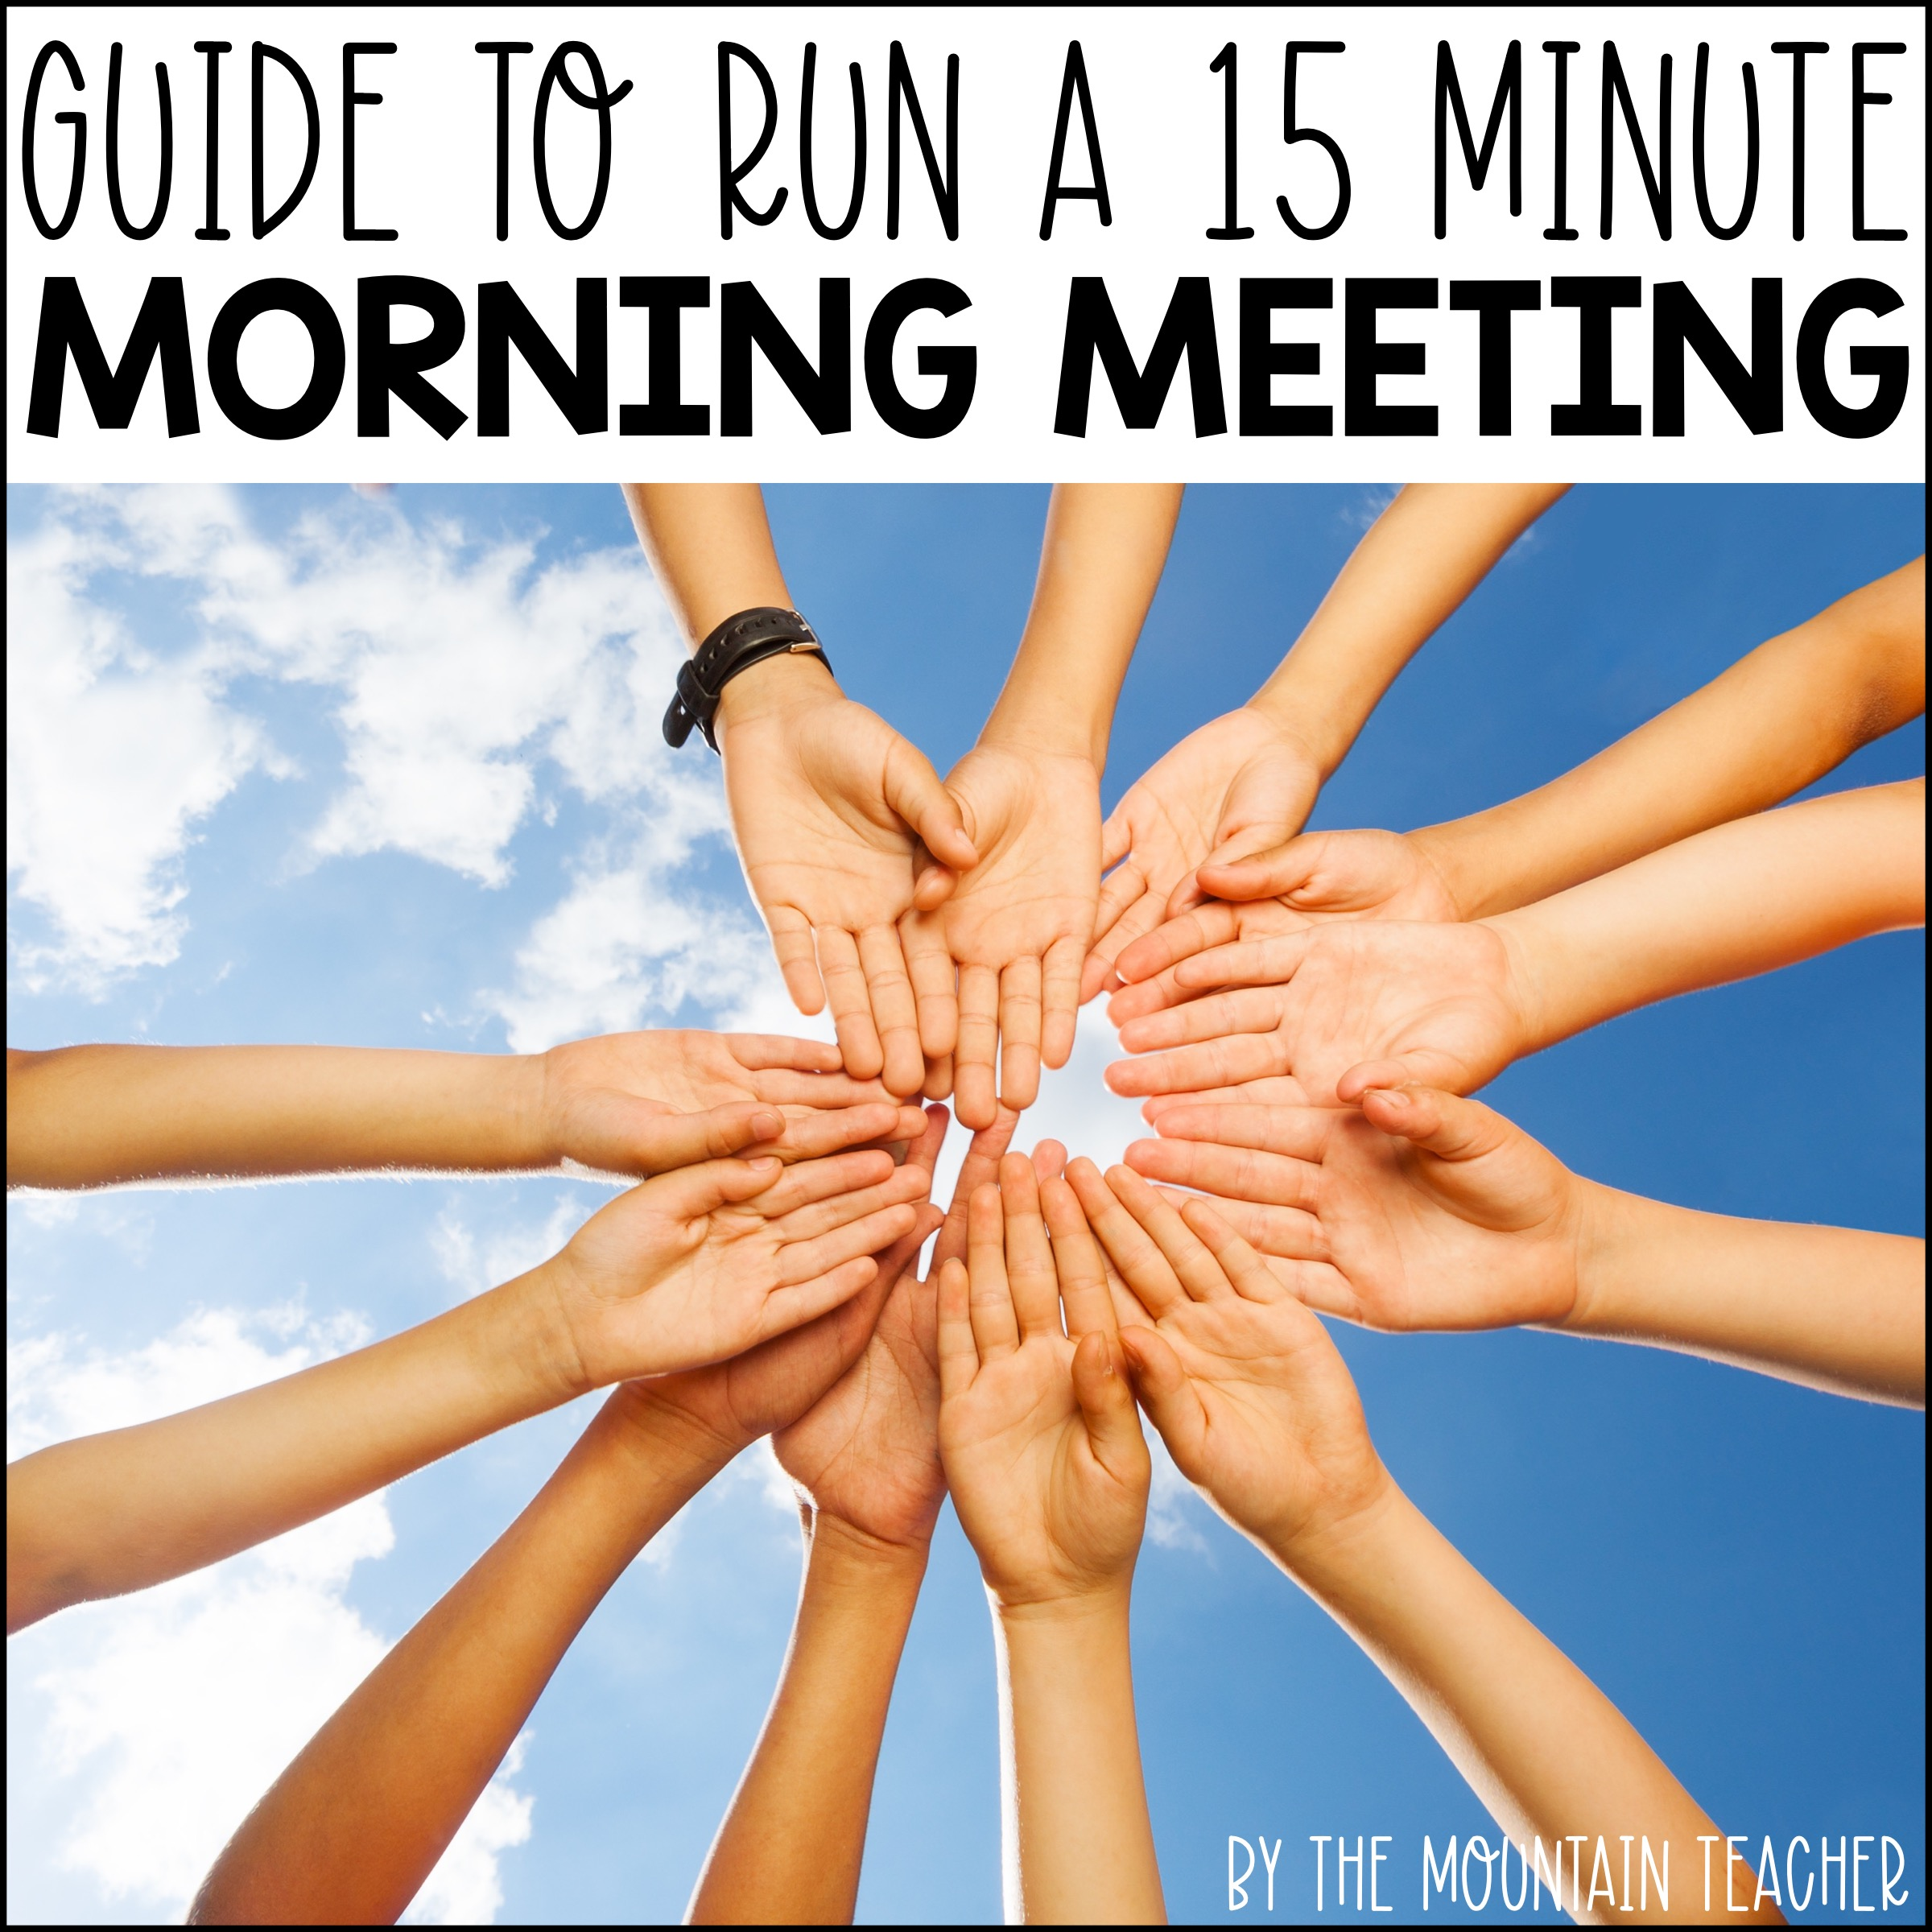 Guide to running an effective 15 minute morning meeting